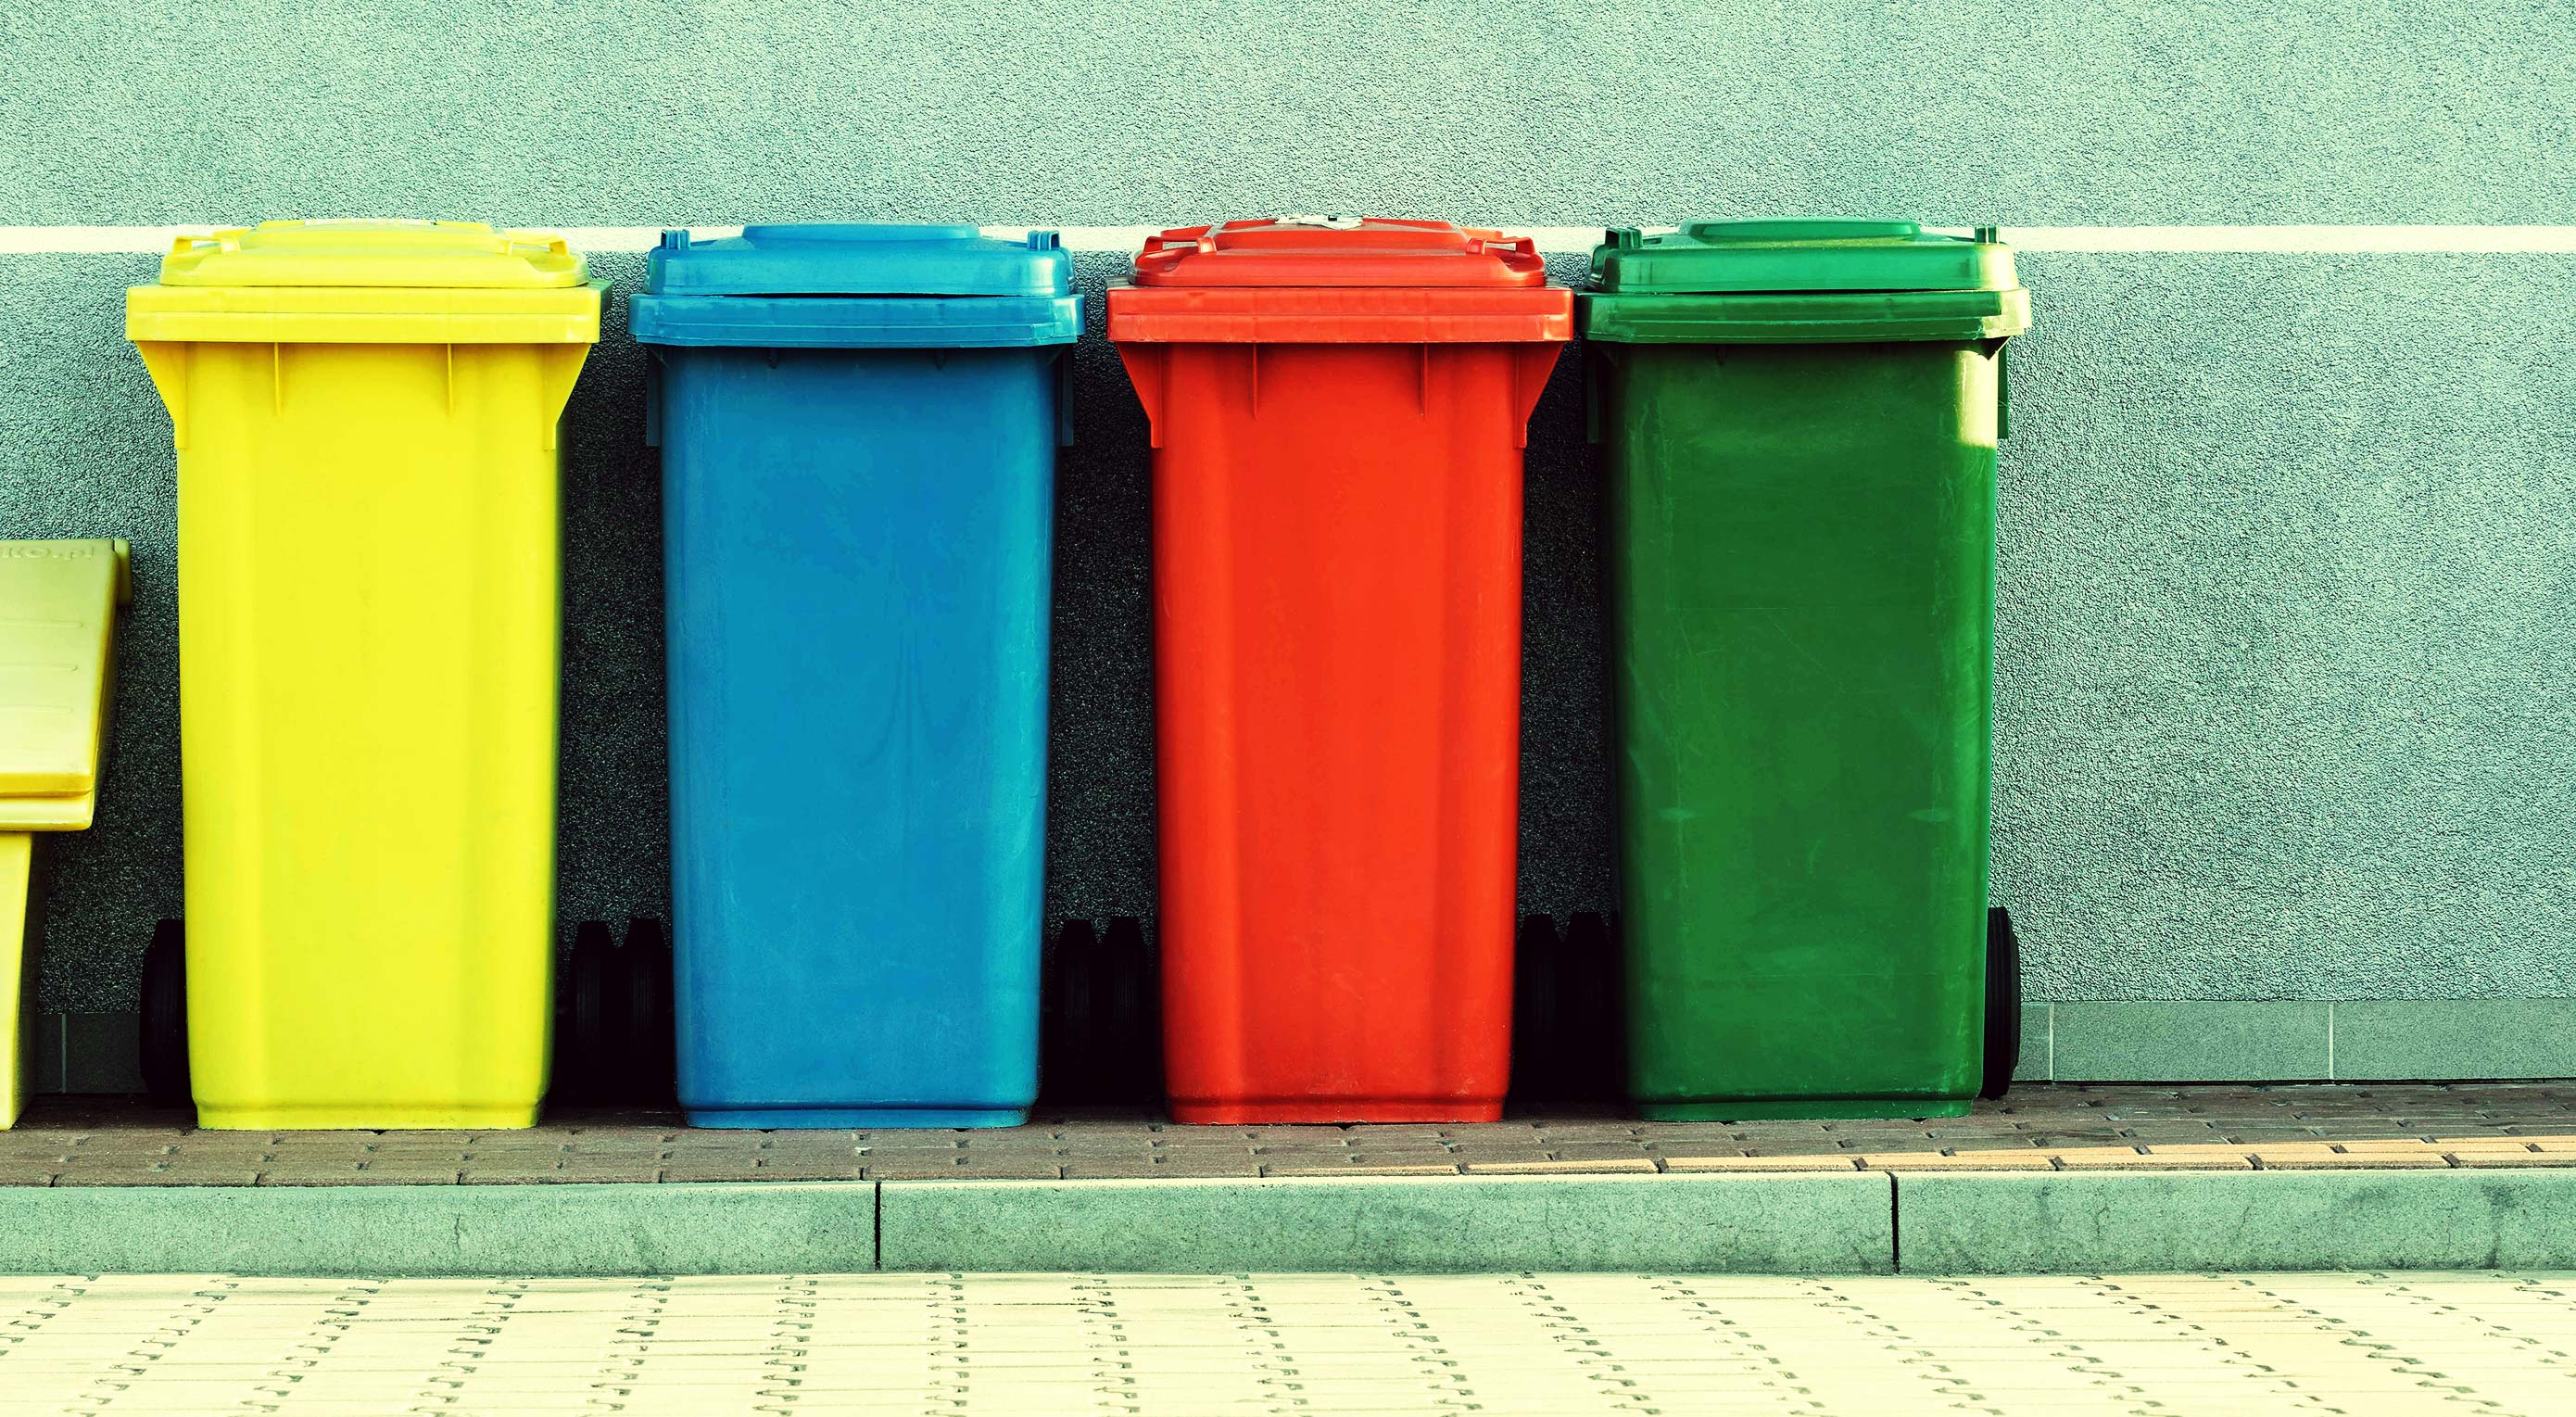 The Secret Design: Designing Trash